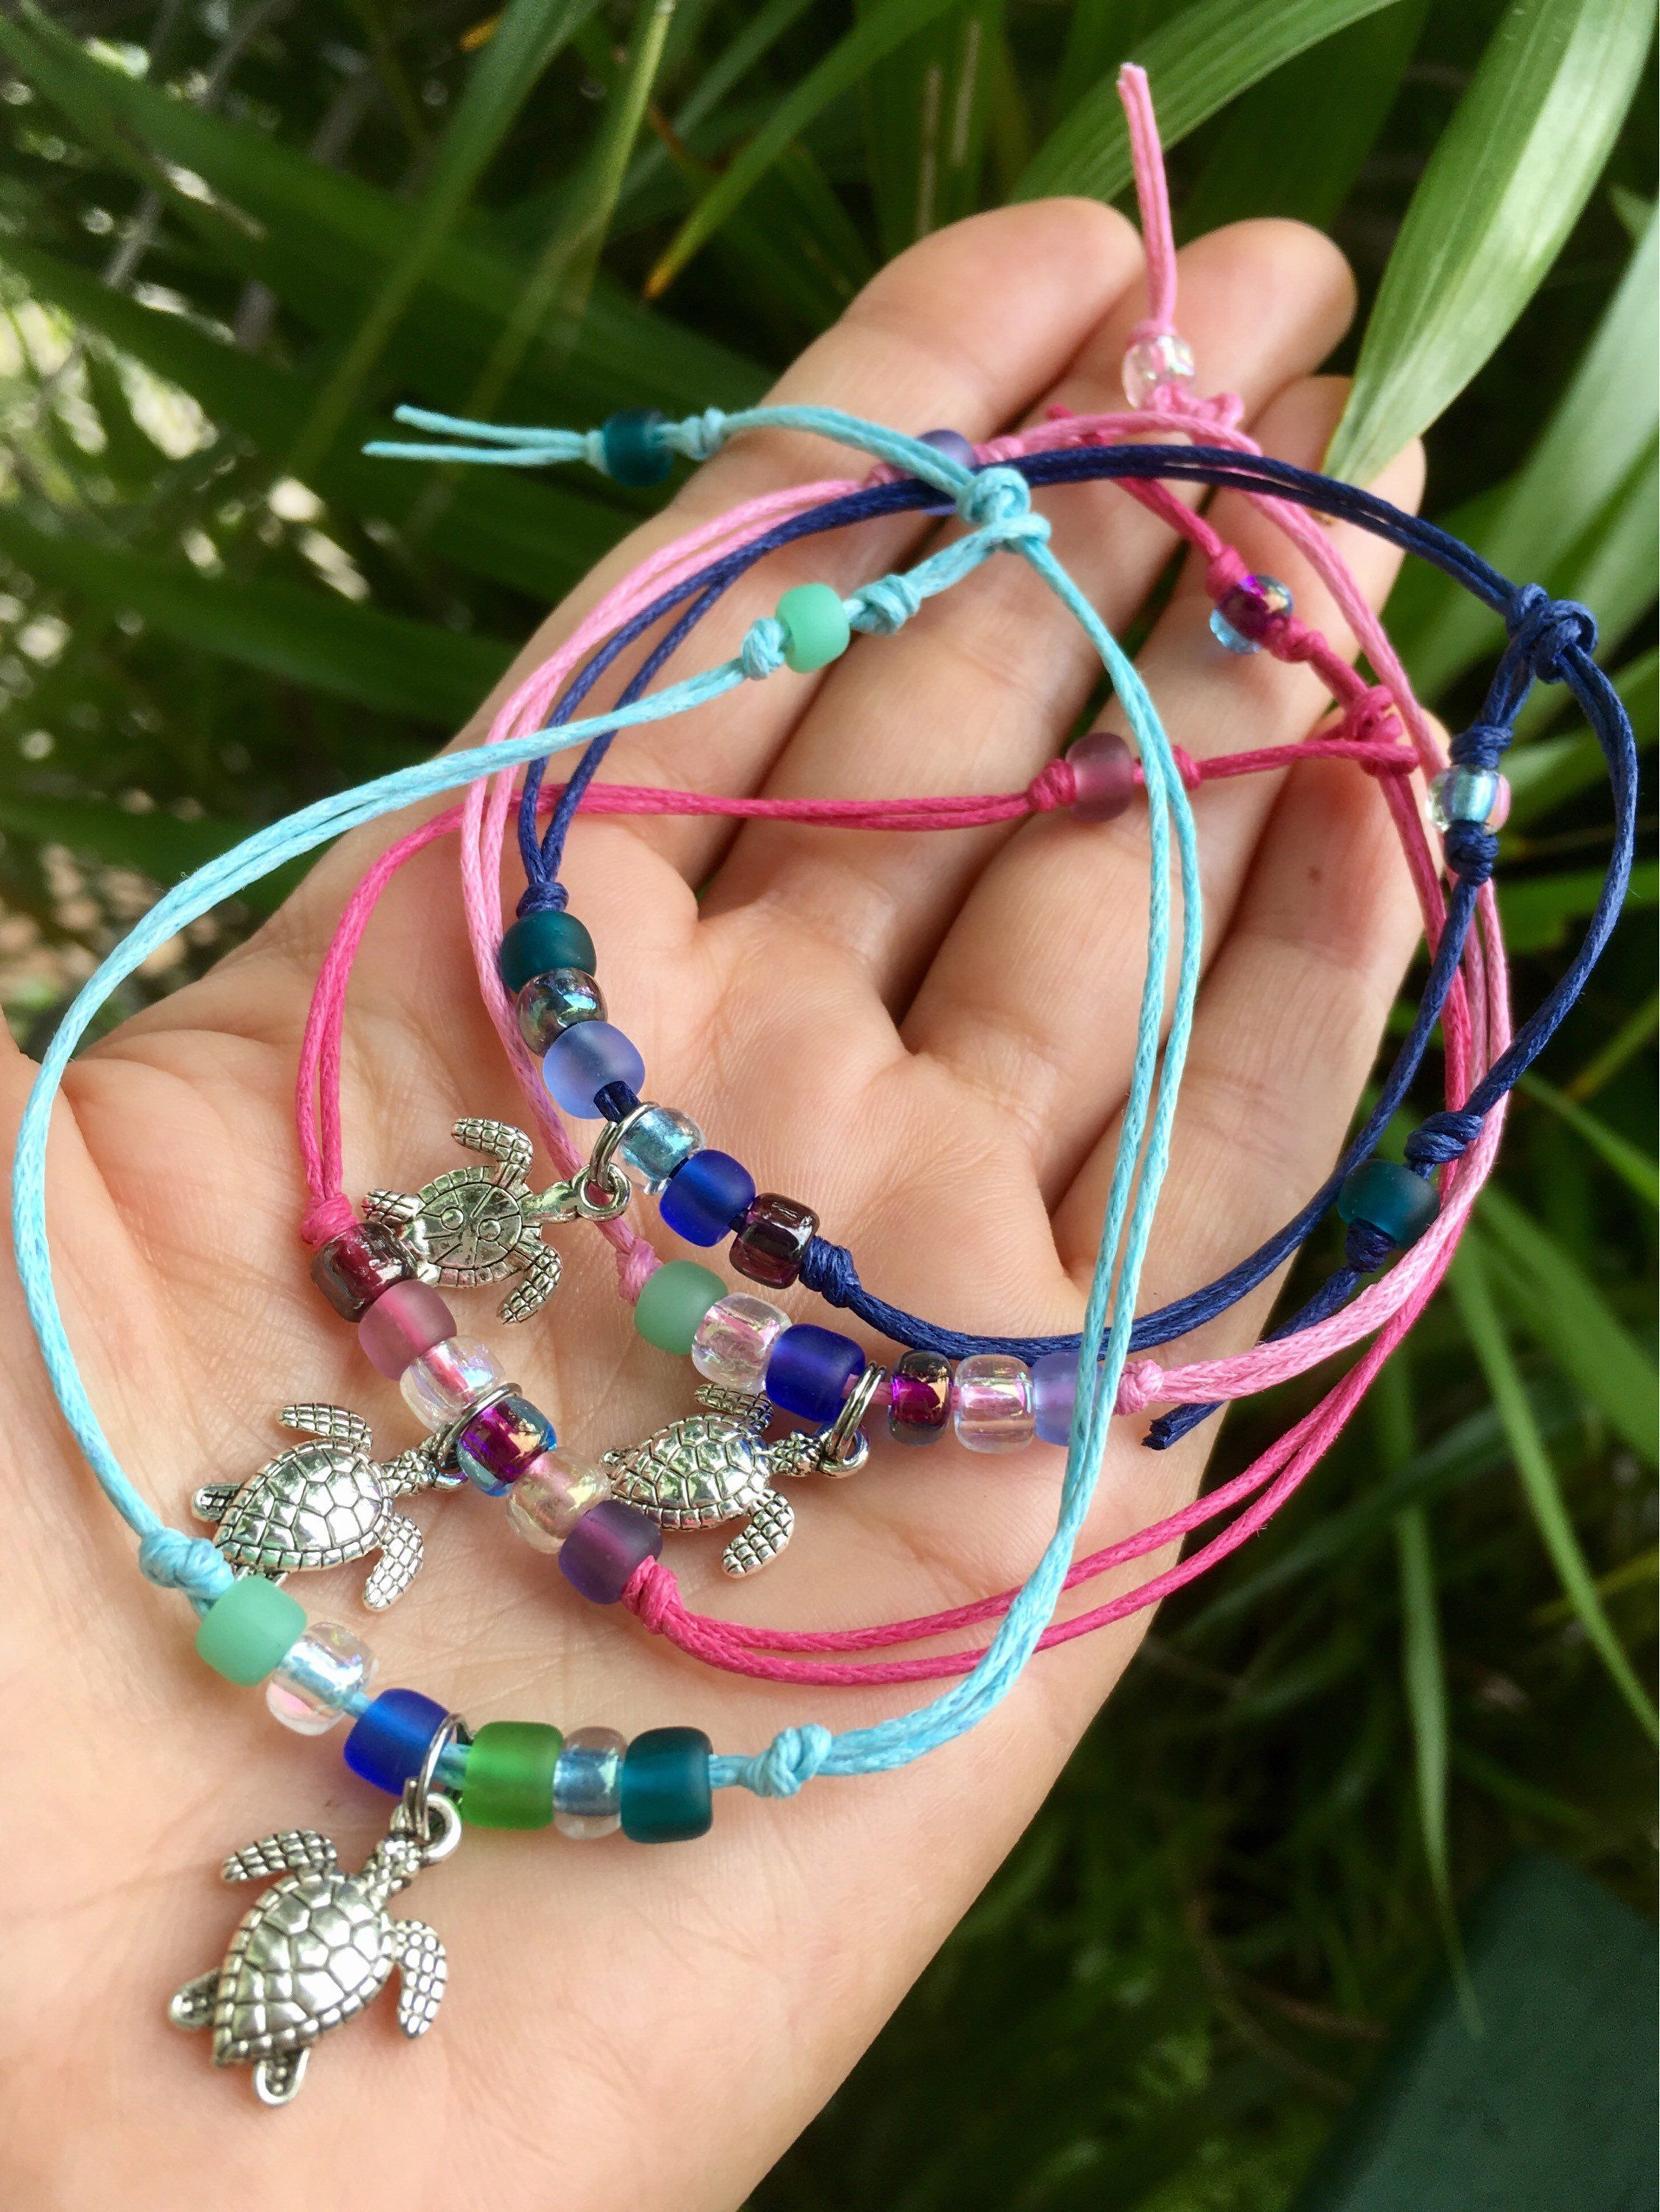 d63b216bfb4 turtle bracelet, sea turtle anklet, hawaiian gift, friendship bracelets,  gift for her, beach jewelry, gift for girls, group gift, team gift